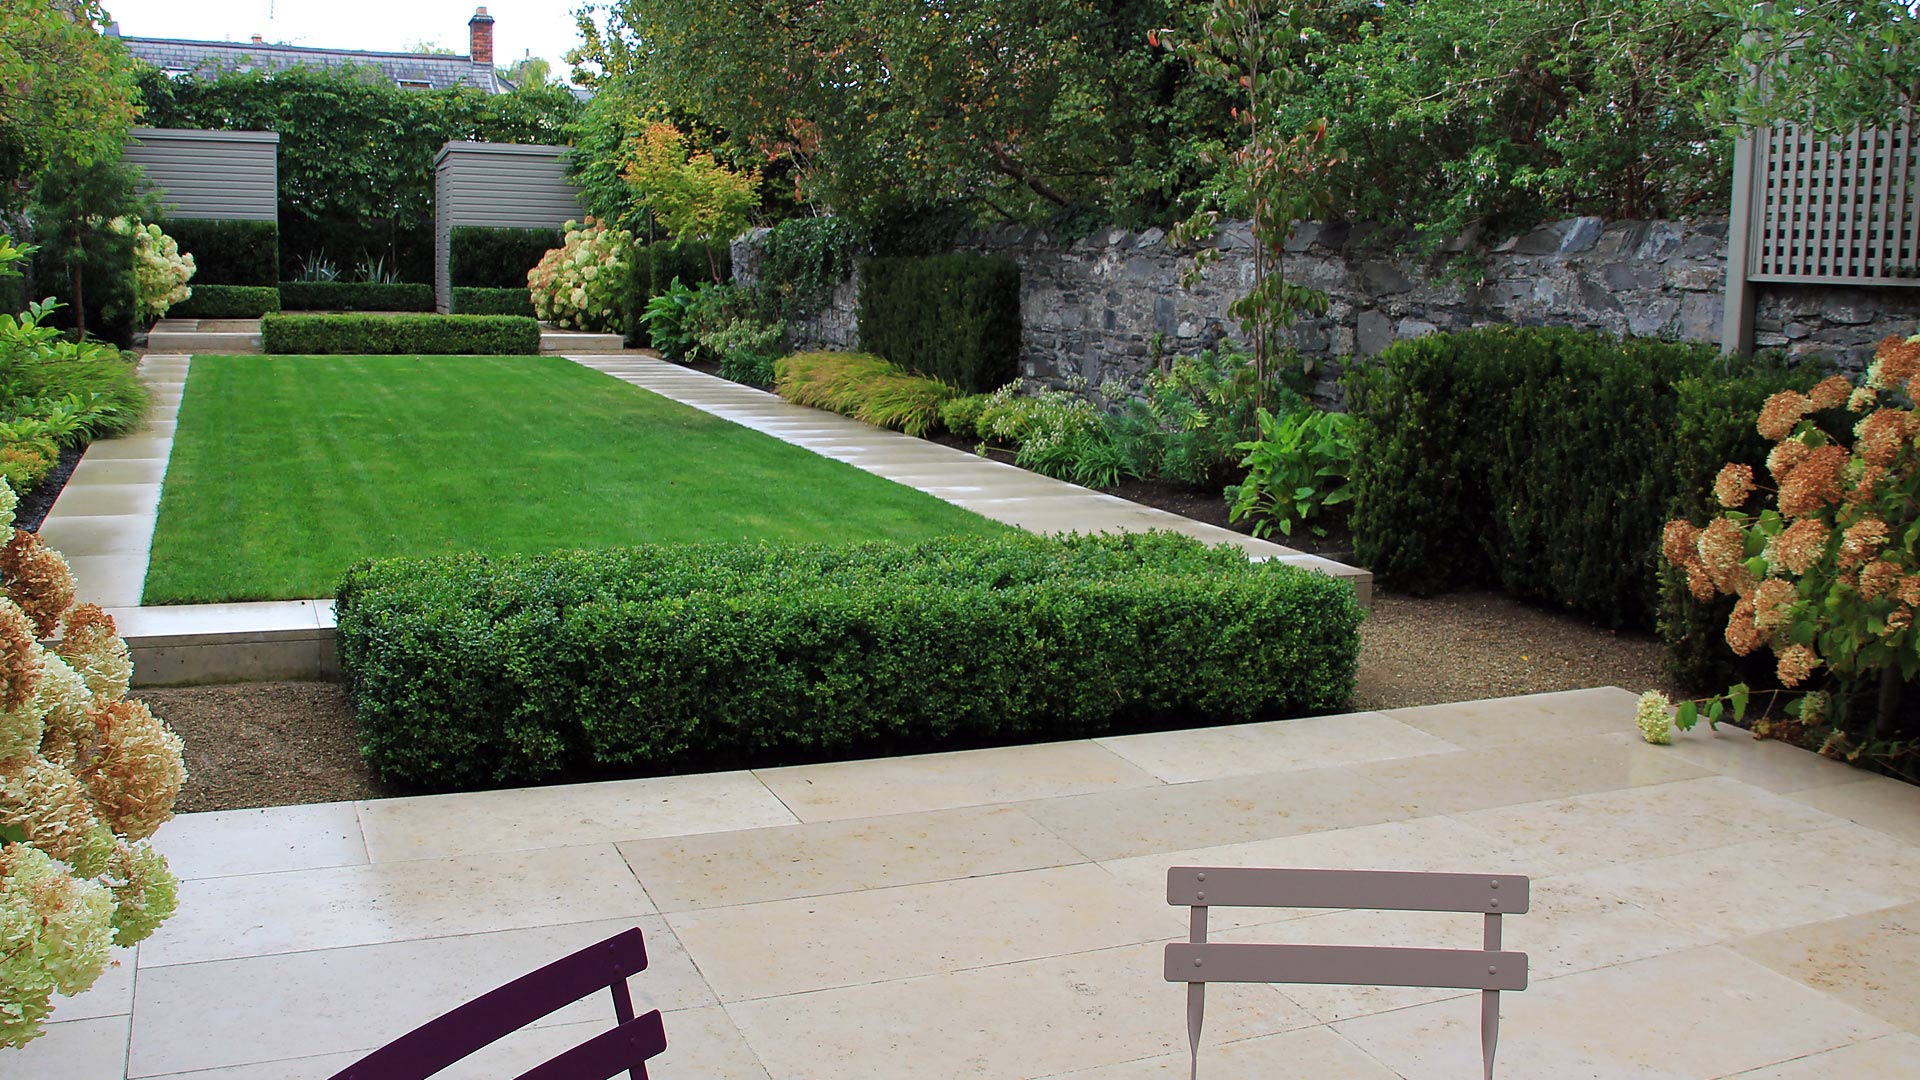 1000 images about trethewey contemporary lawn on for Contemporary gardens